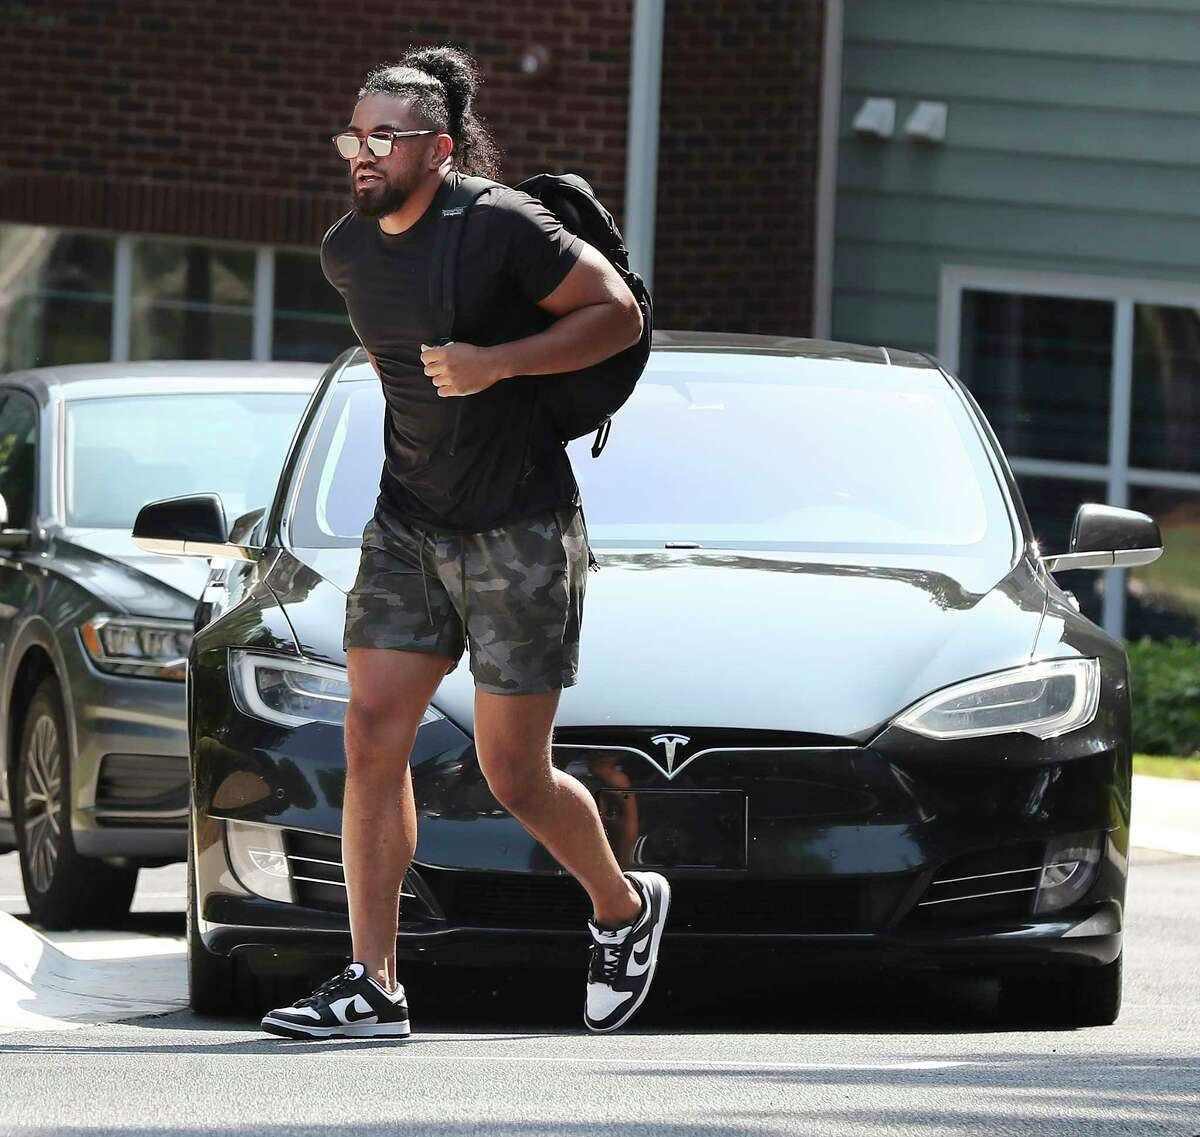 Atlanta Falcons linebacker Jacob Tuioti-Mariner walks in front of the Tesla he arrived in for NFL football training camp in Flowery Branch, Ga., Tuesday, July 27, 2021. (Curtis Compton/Atlanta Journal-Constitution via AP)